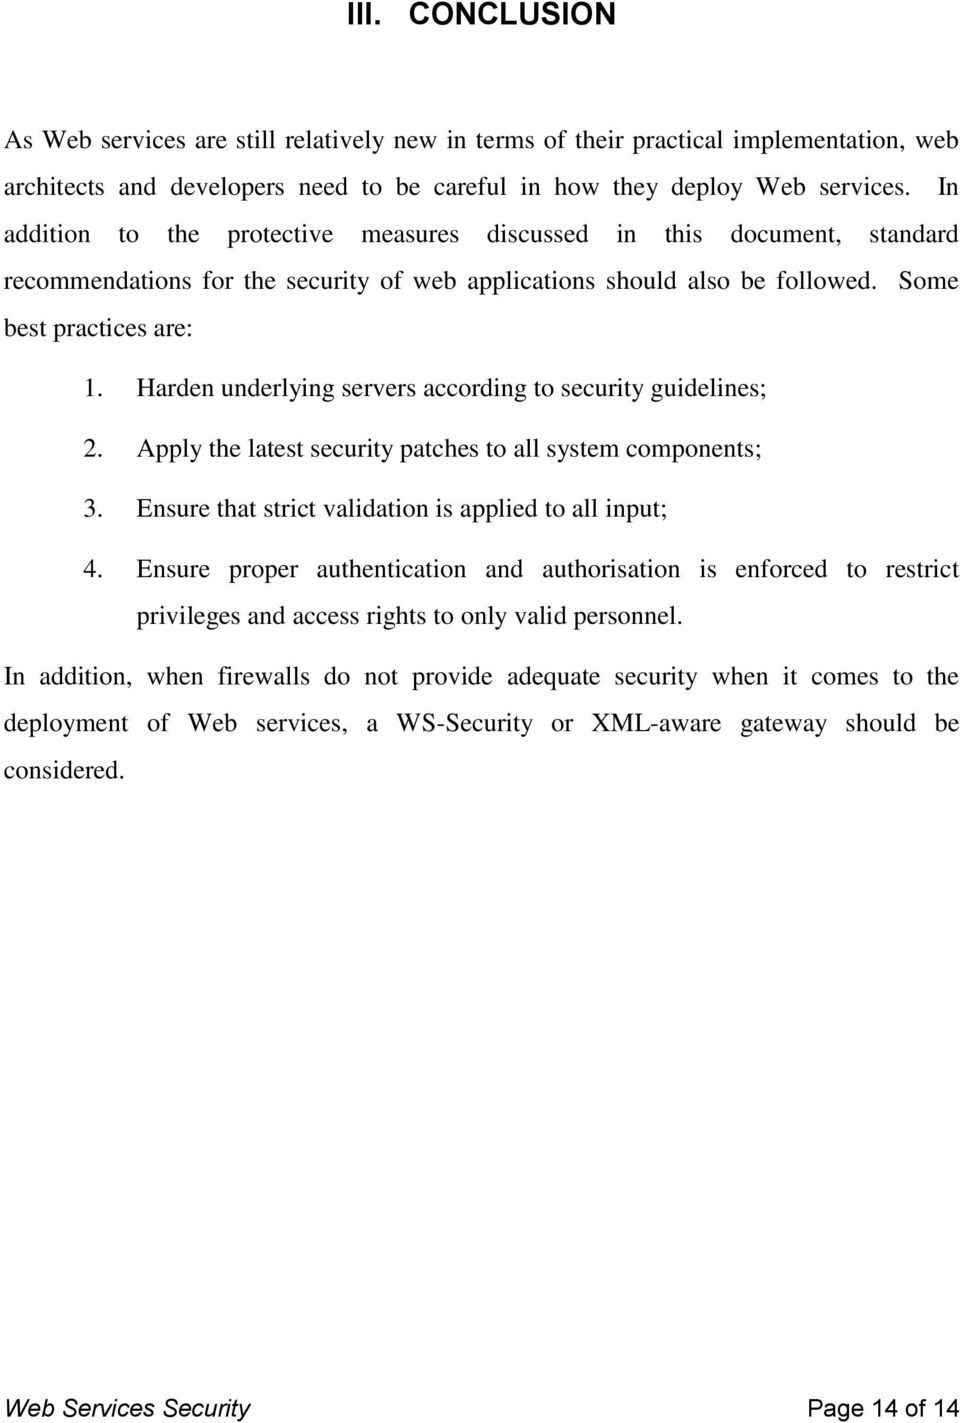 Harden underlying servers according to security guidelines; 2. Apply the latest security patches to all system components; 3. Ensure that strict validation is applied to all input; 4.